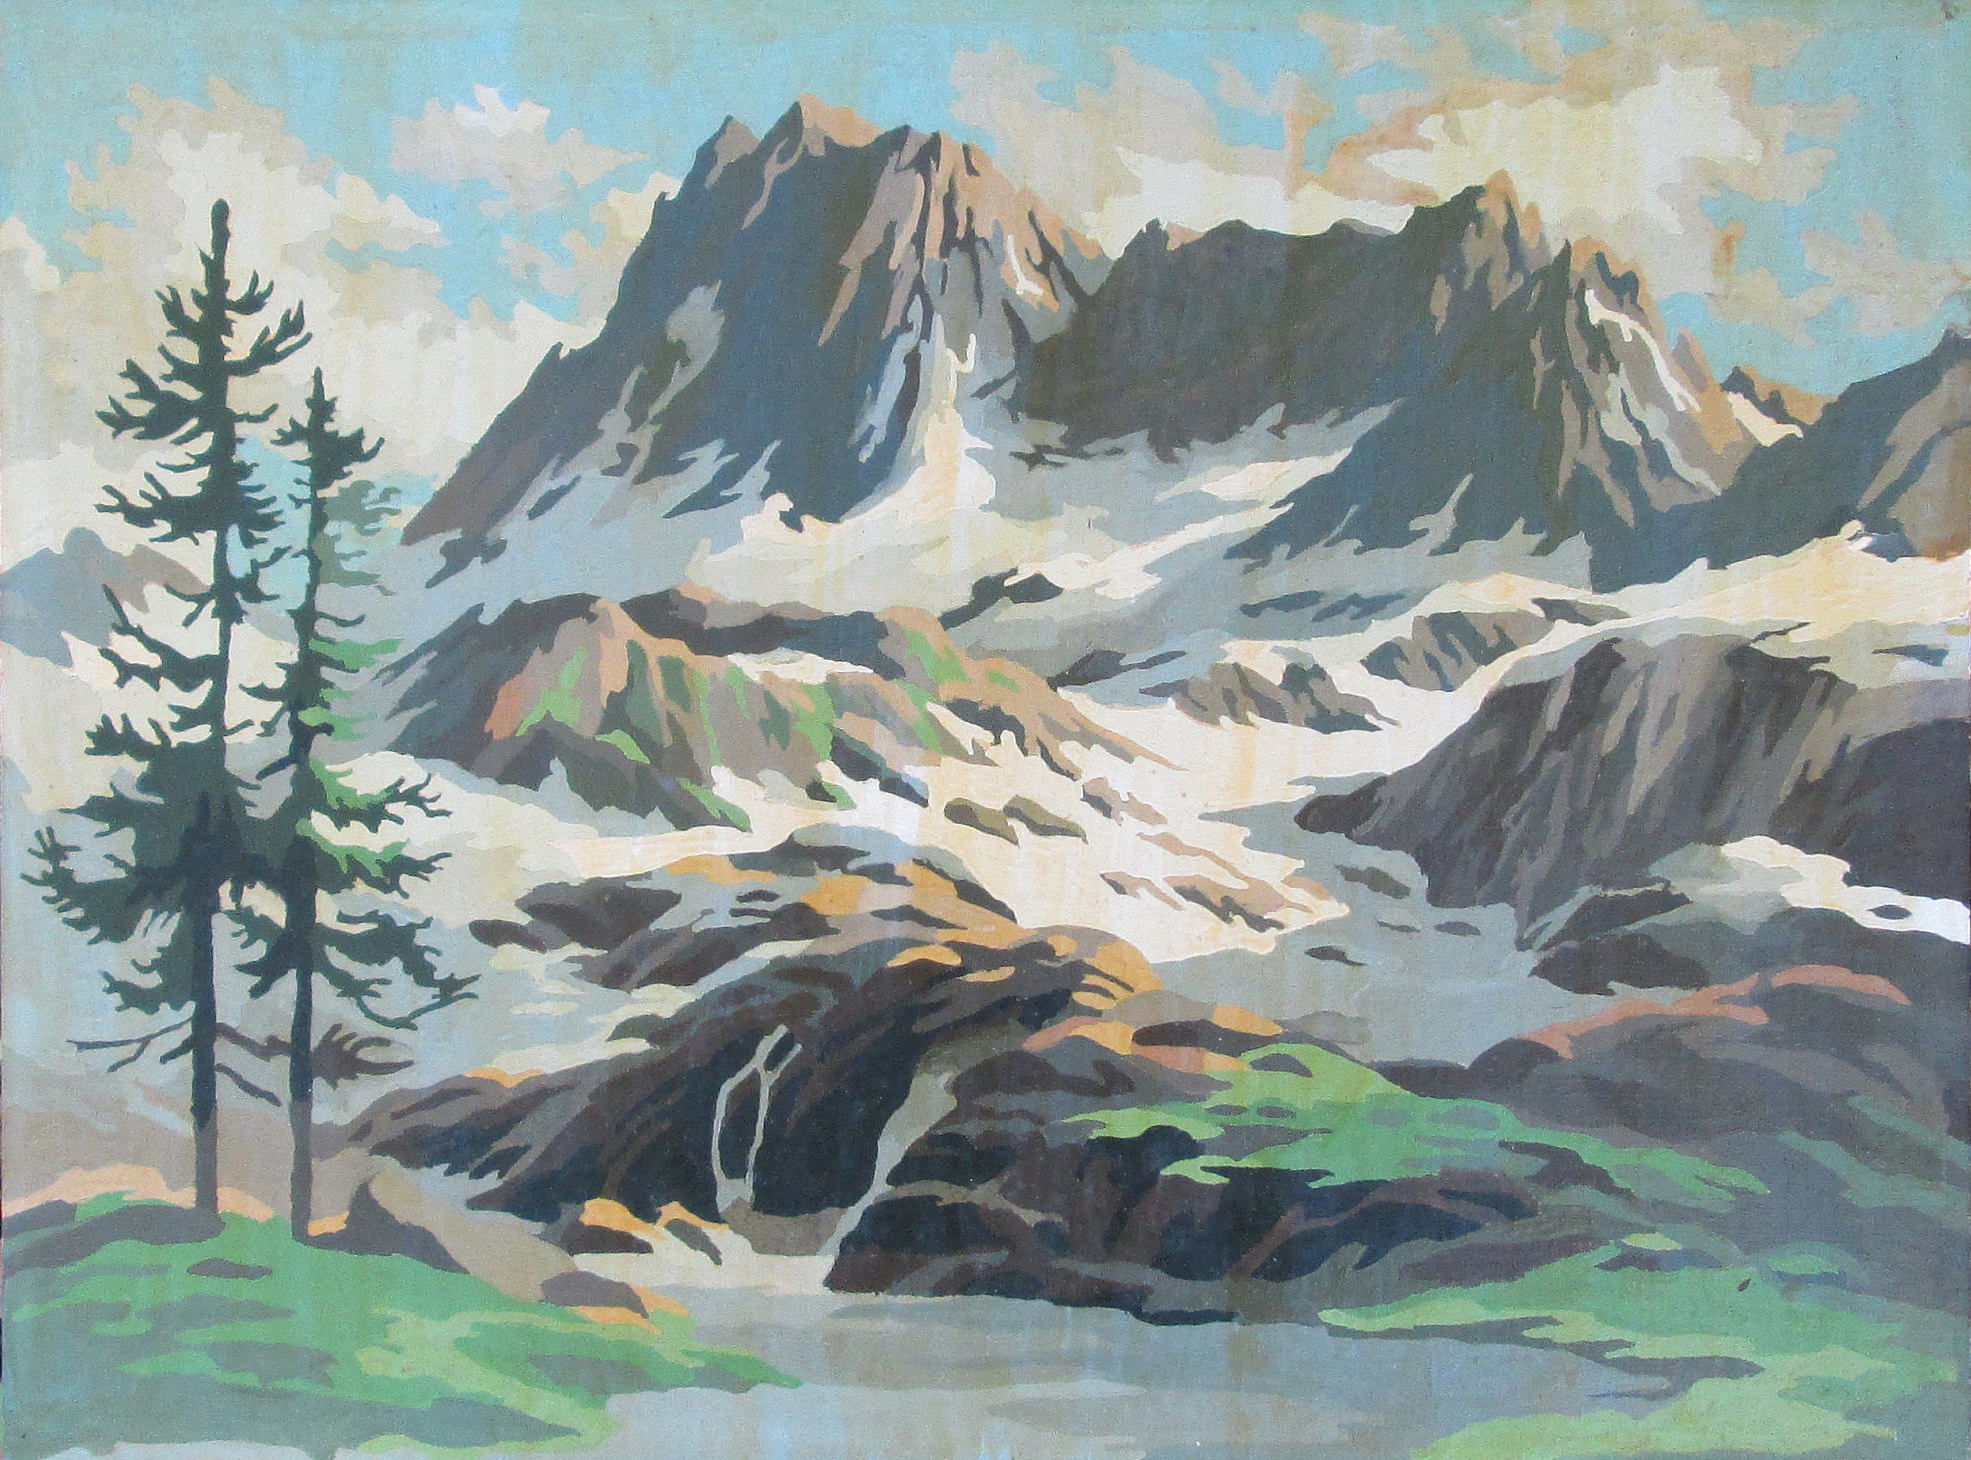 Vintage Paint by Number Mountain Landscape Painting 1964 Craft Master PBN Unframed 1960's